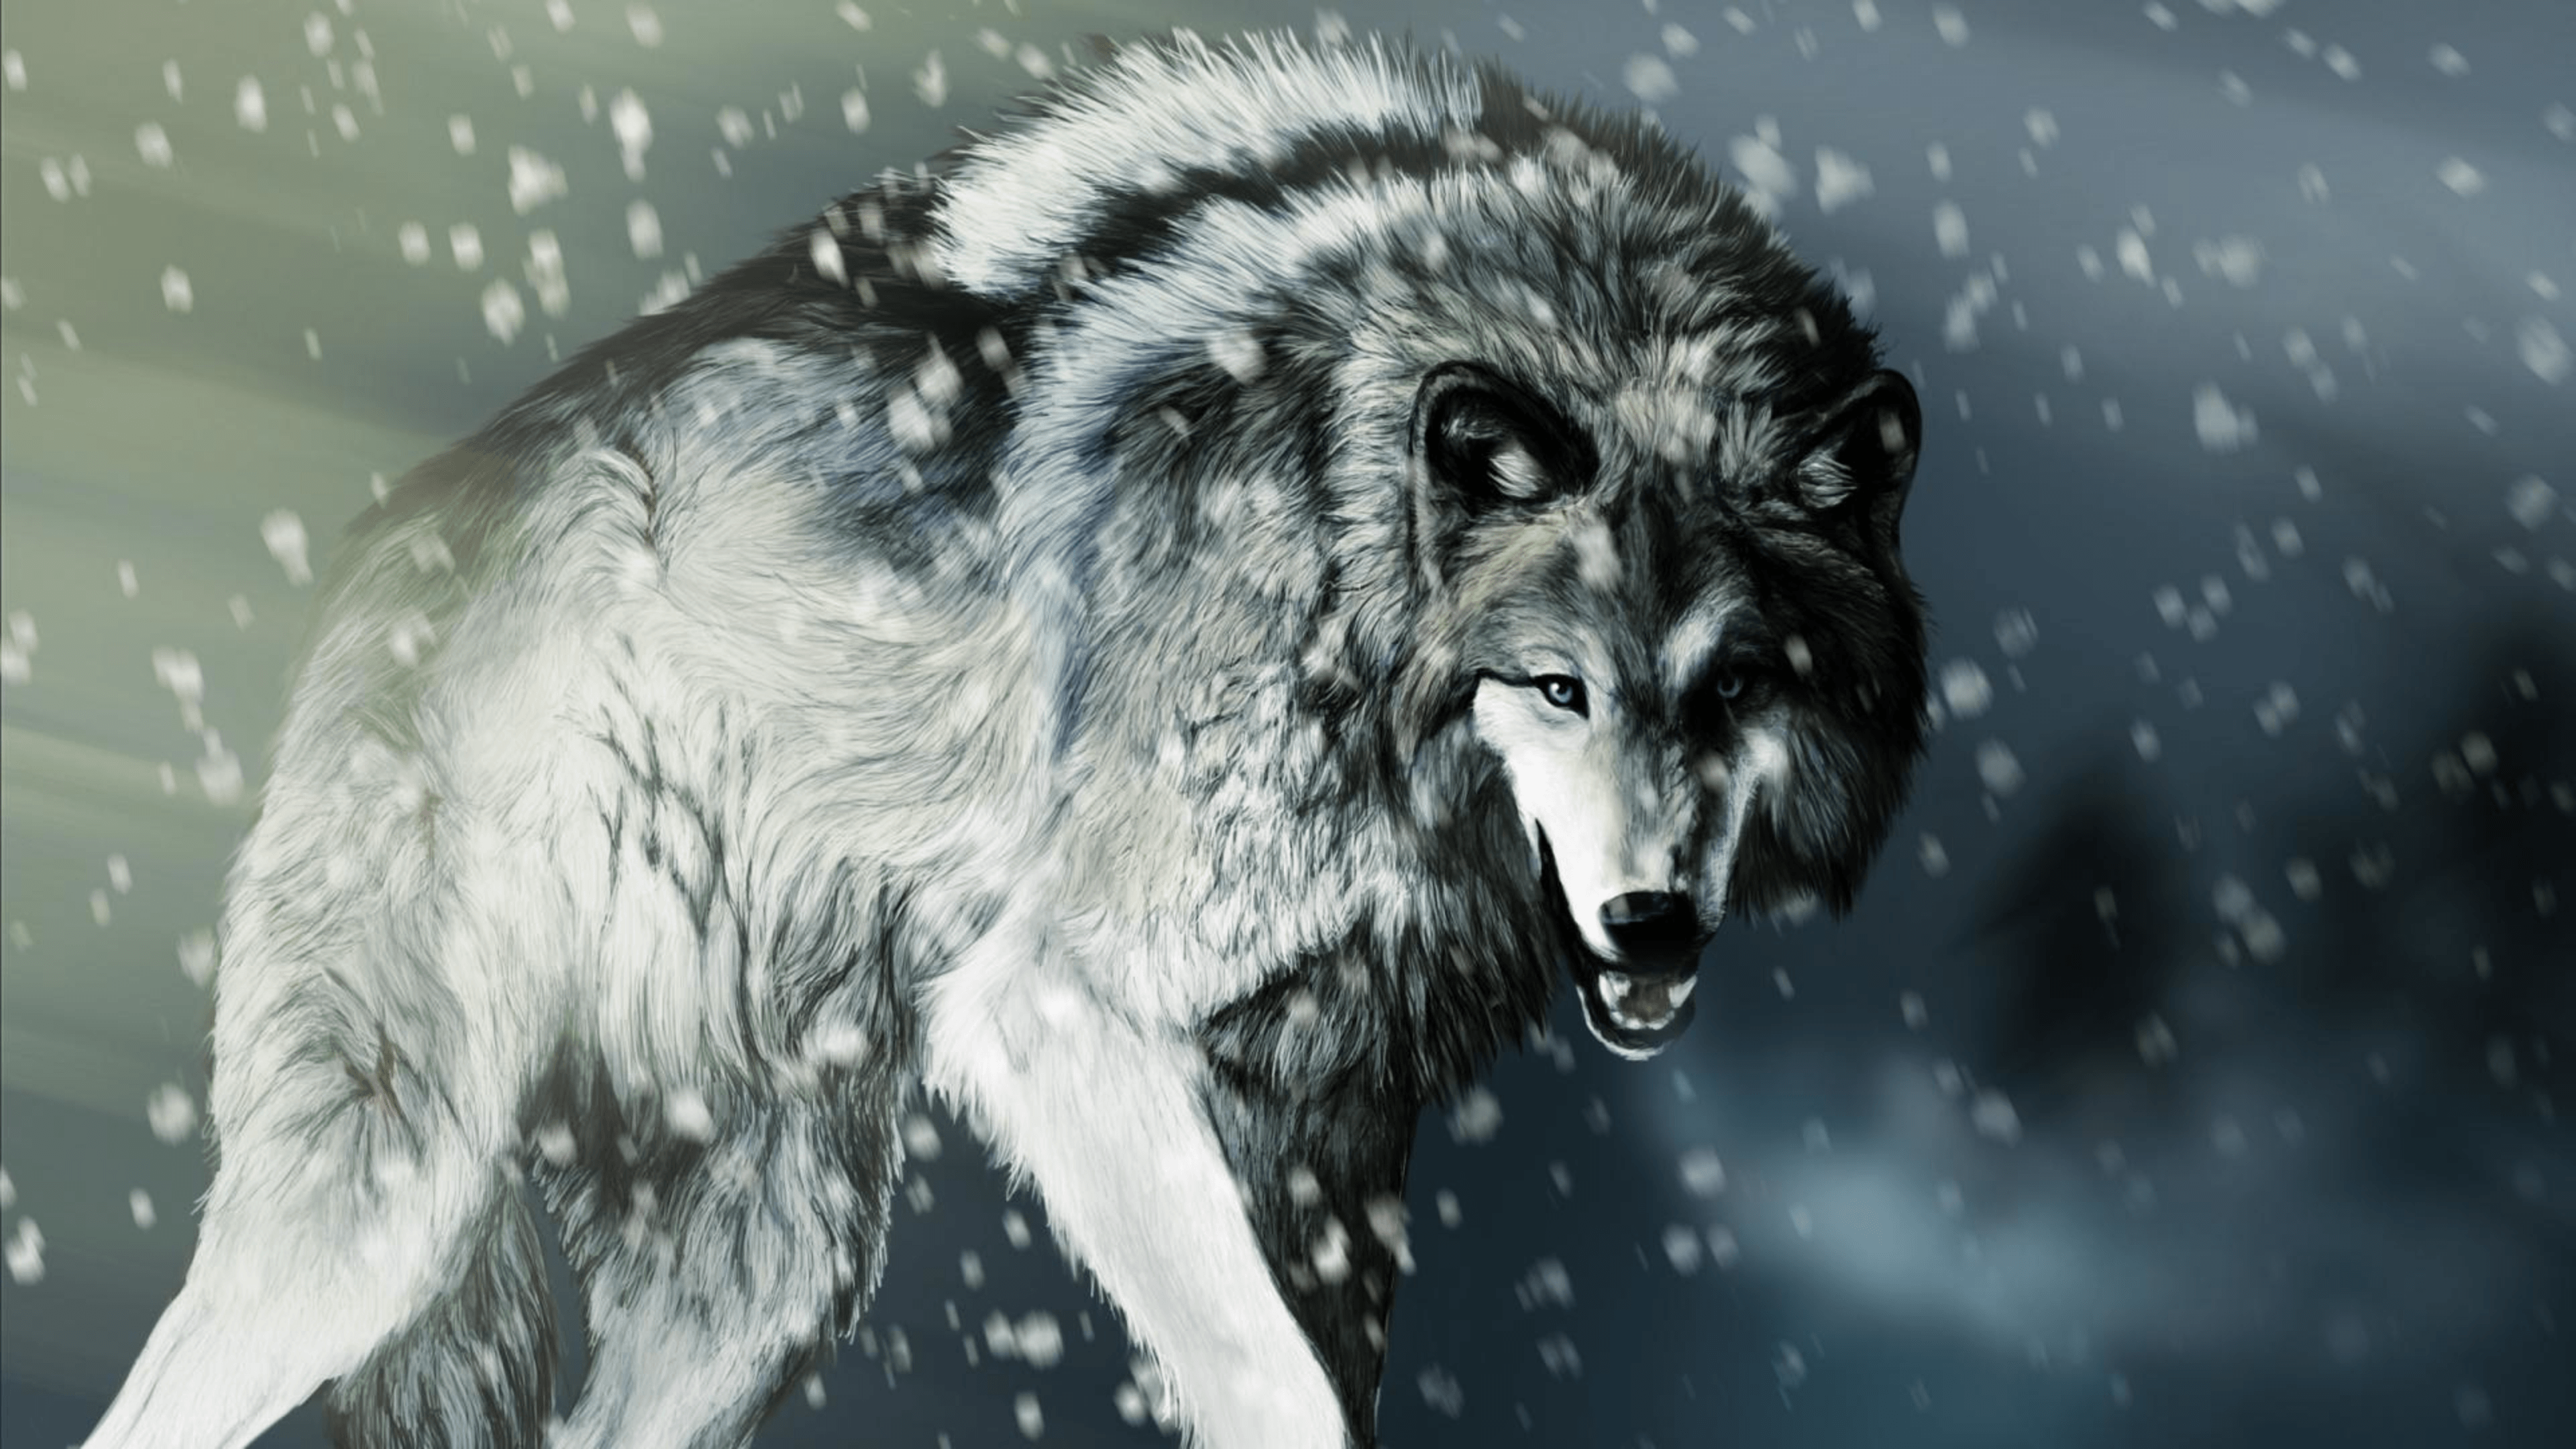 Wolf 3840x2160 Wallpapers Top Free Wolf 3840x2160 Backgrounds Wallpaperaccess